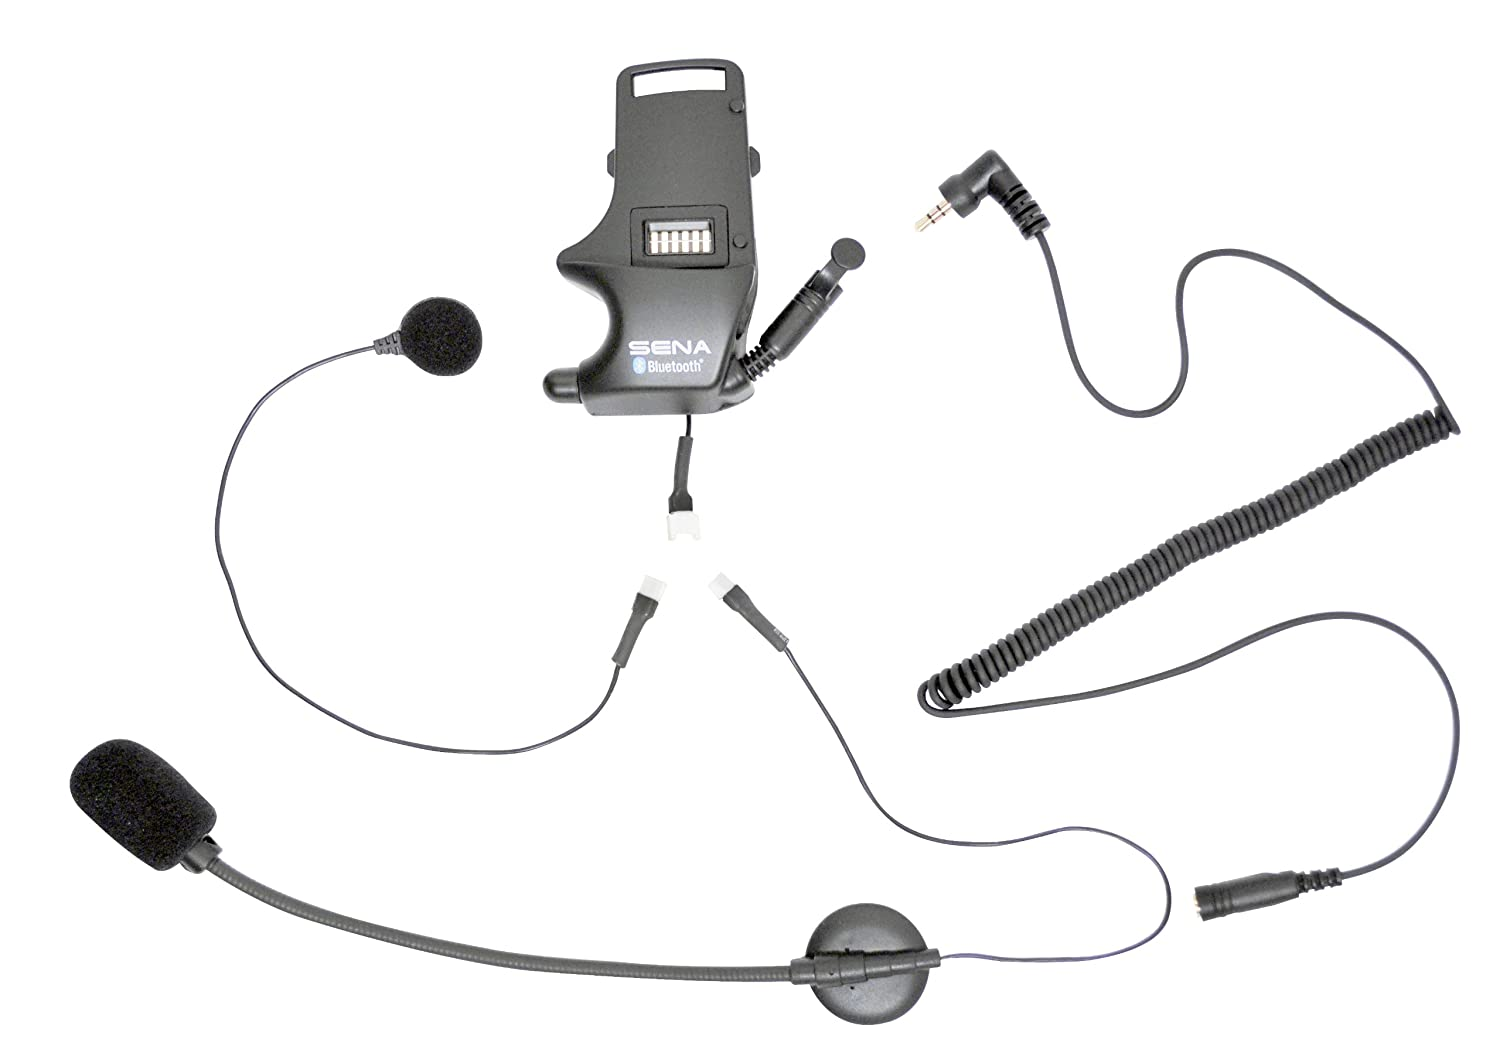 Sena SMH-A0304 Helmet Clamp Kit for Earbuds with Attachable Boom Microphone and Wired Microphone Sena Bluetooth